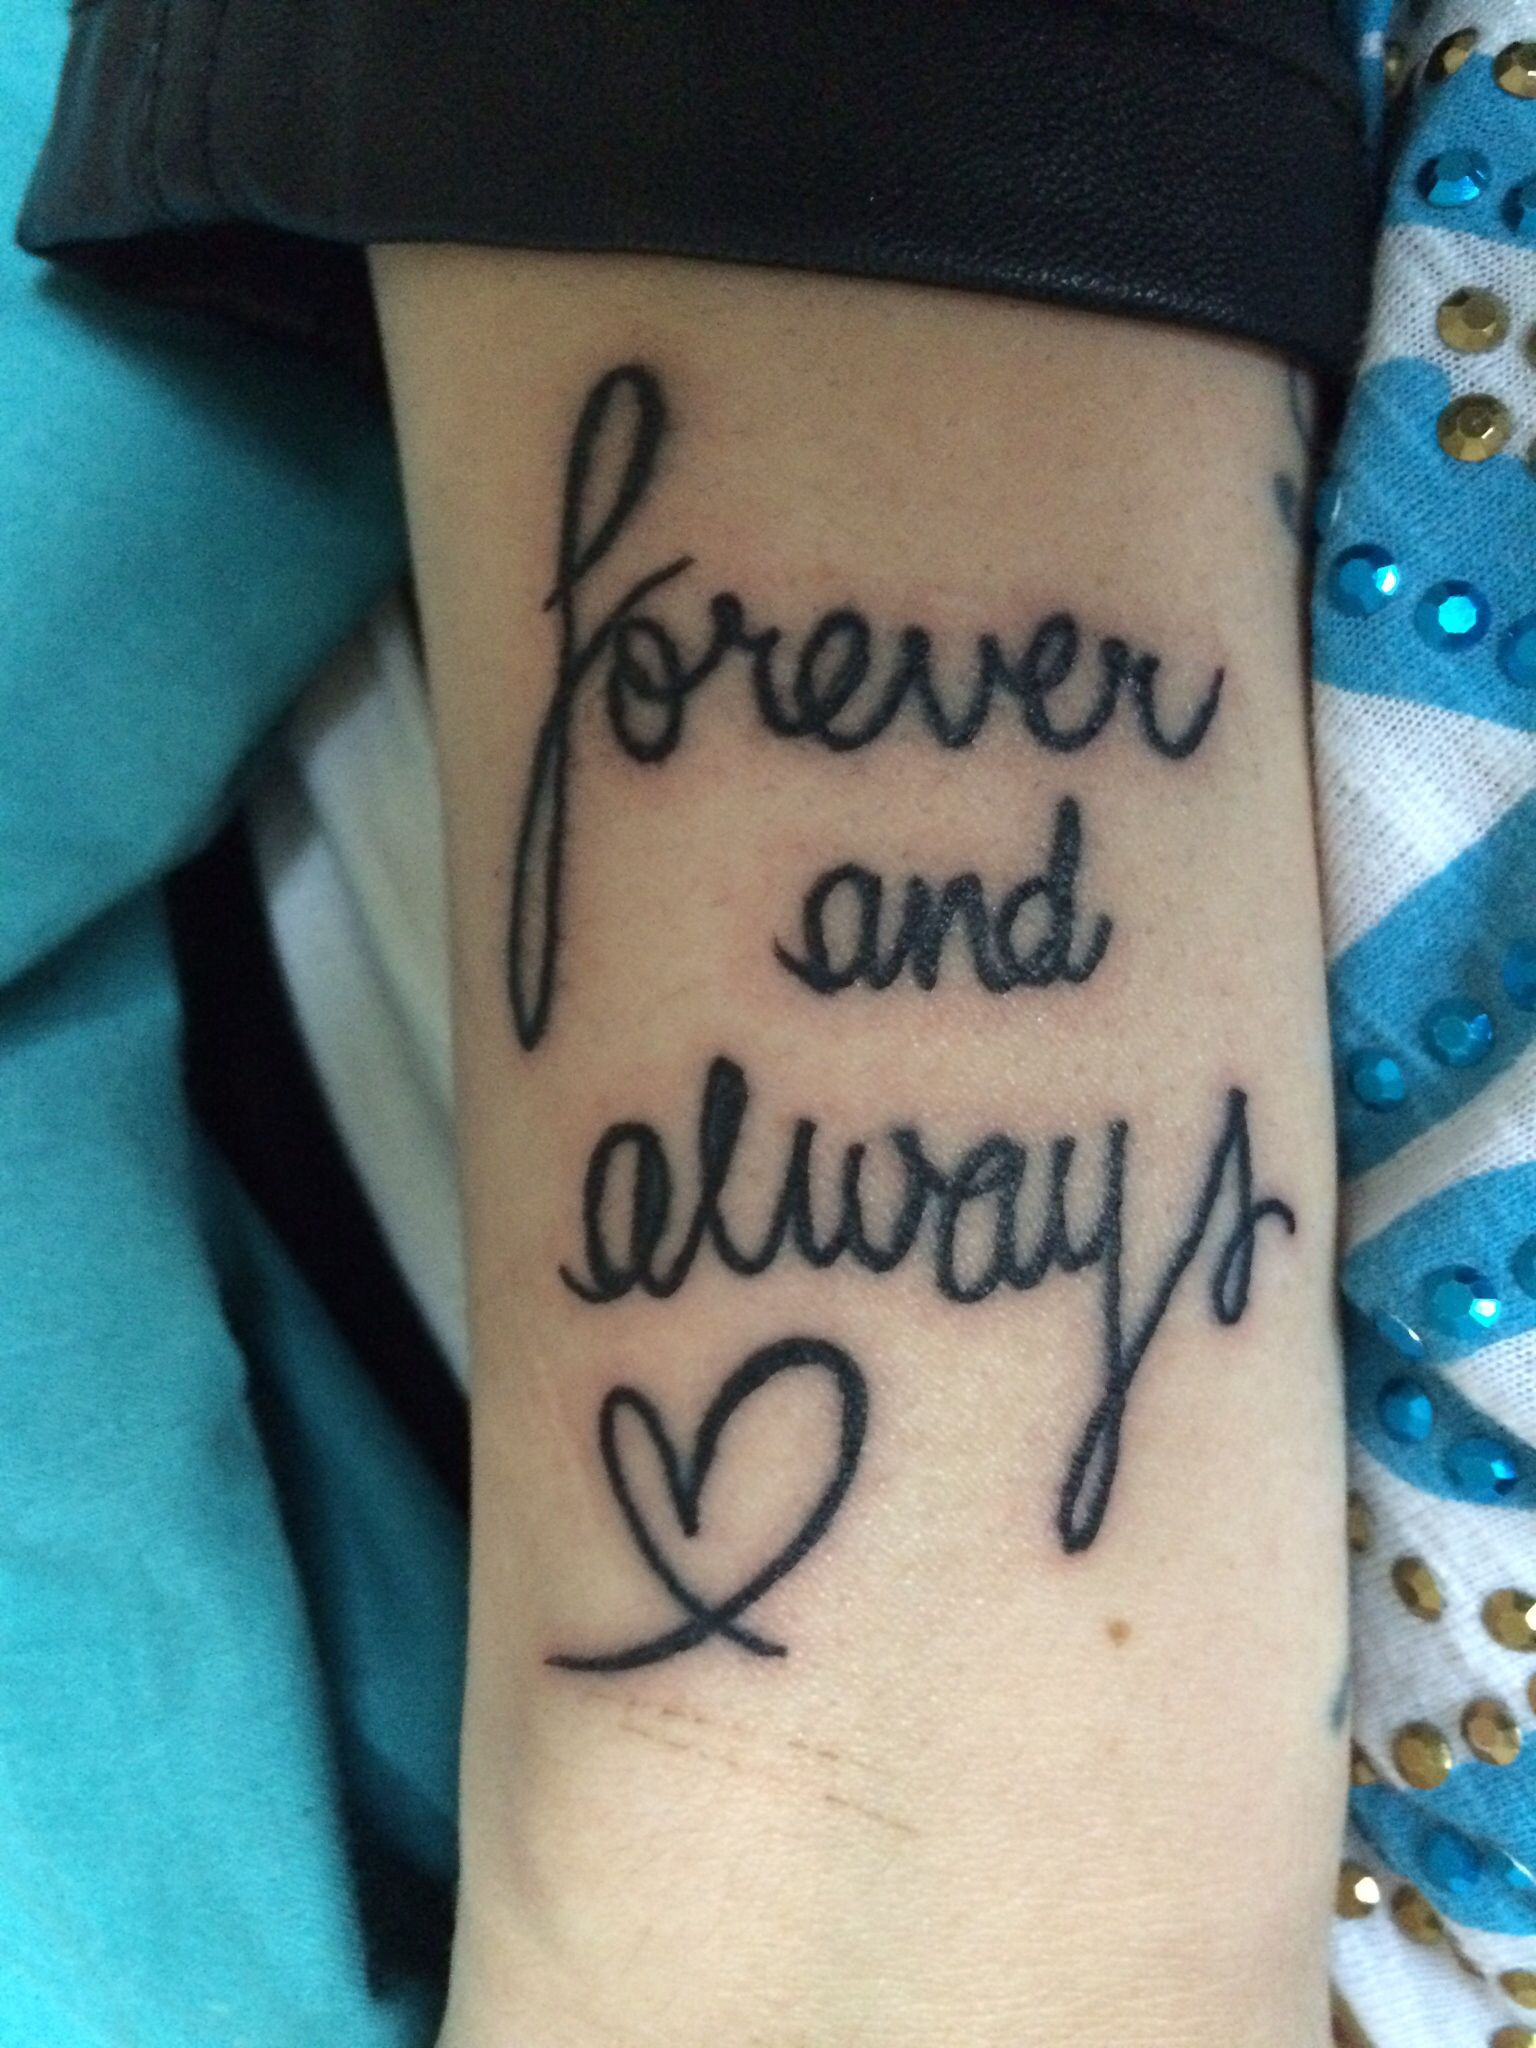 forever and always tattoo tattoos piercings pinterest always tattoo and tattoos and body art. Black Bedroom Furniture Sets. Home Design Ideas